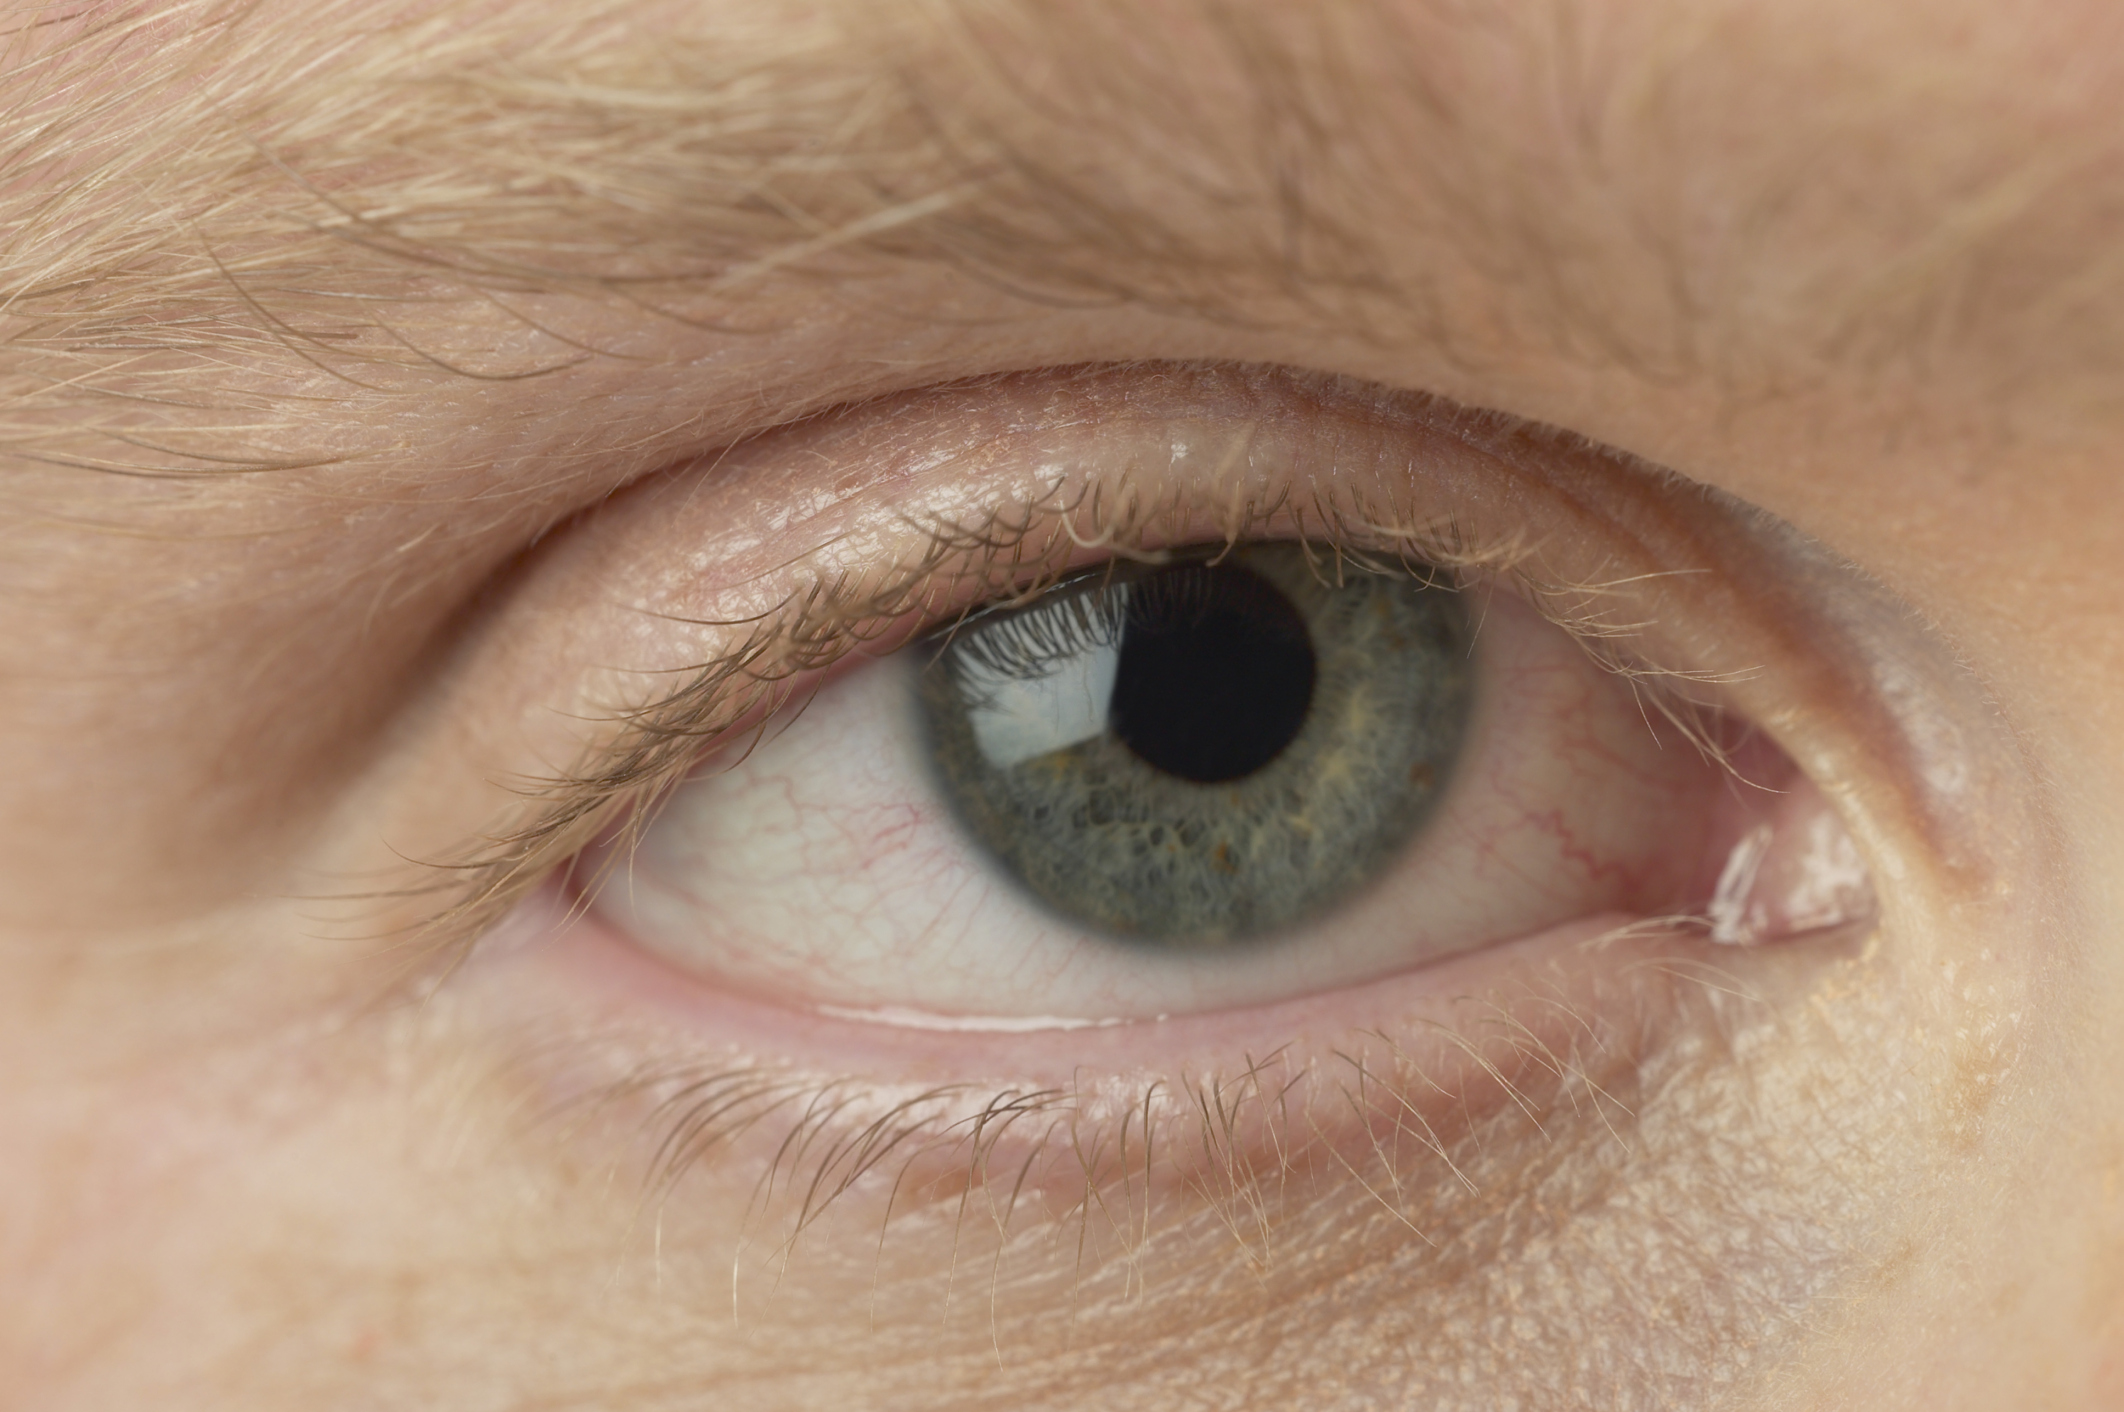 hpv in your eye